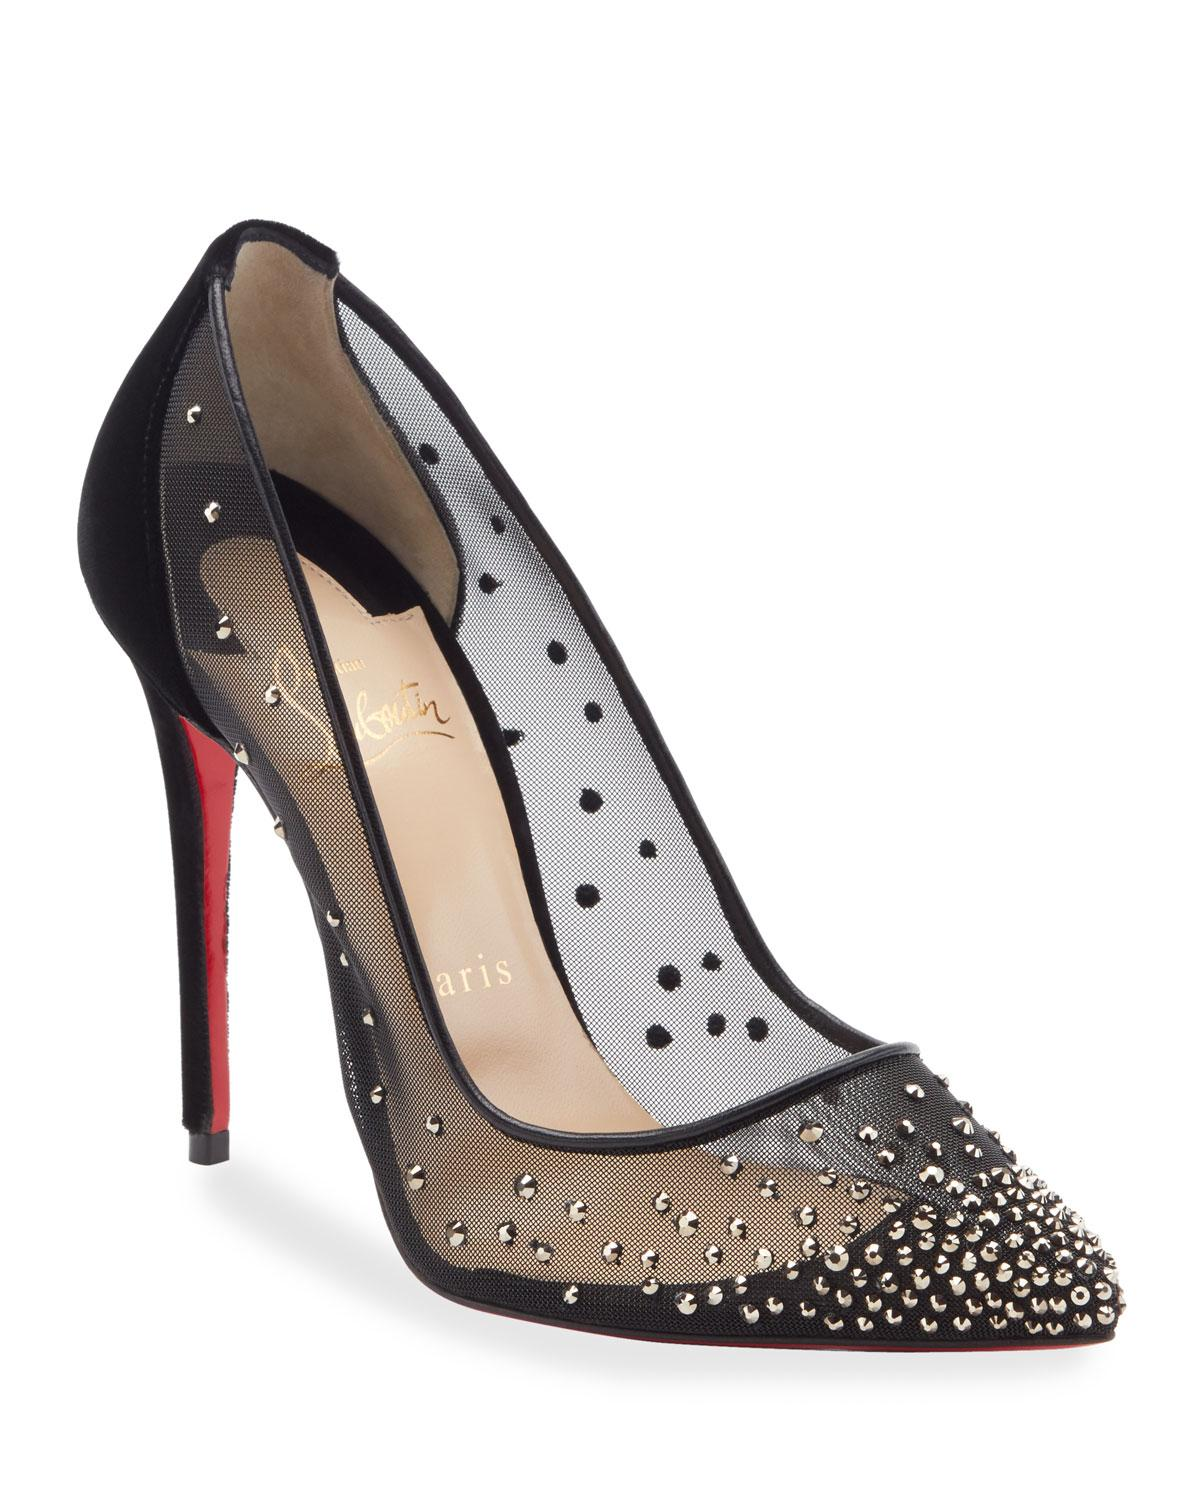 promo code df2b3 a665e Christian Louboutin Black Follies Strass-embellished Red Sole Pumps